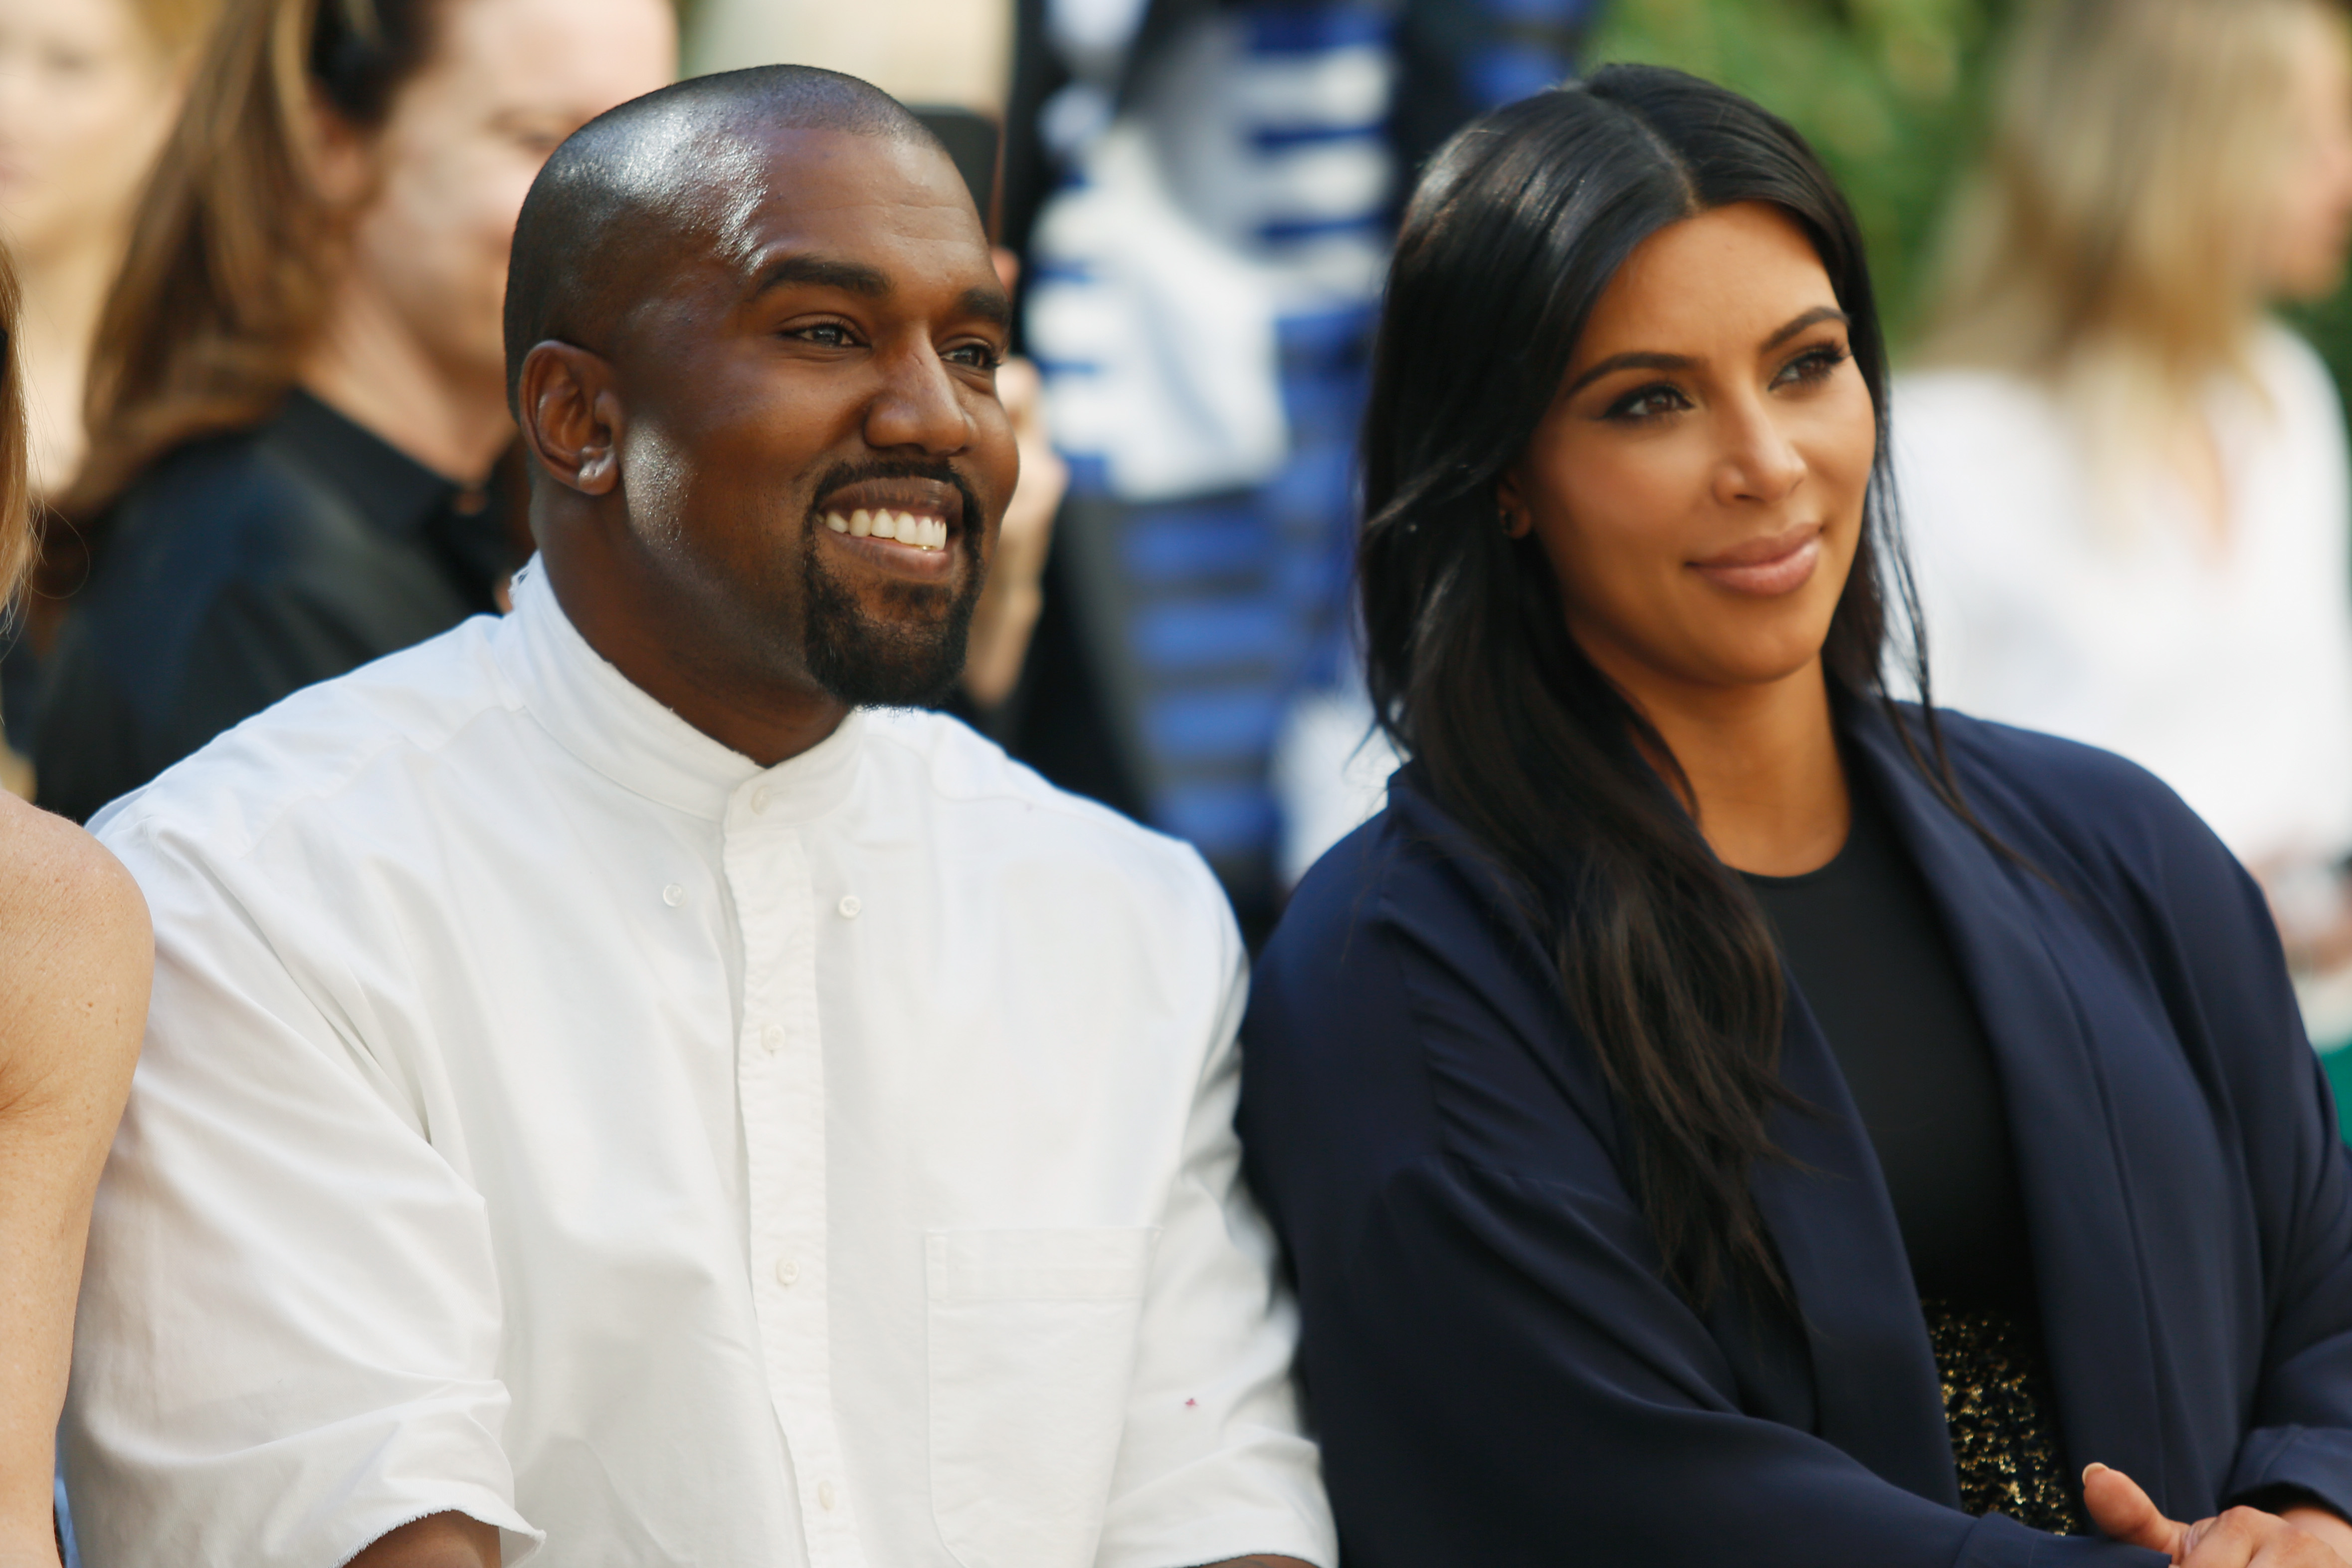 Recording artist Kanye West (L) and TV personality Kim Kardashian attend CFDA/Vogue Fashion Fund Show and Tea at Chateau Marmont on October 20, 2015 in Los Angeles, California.